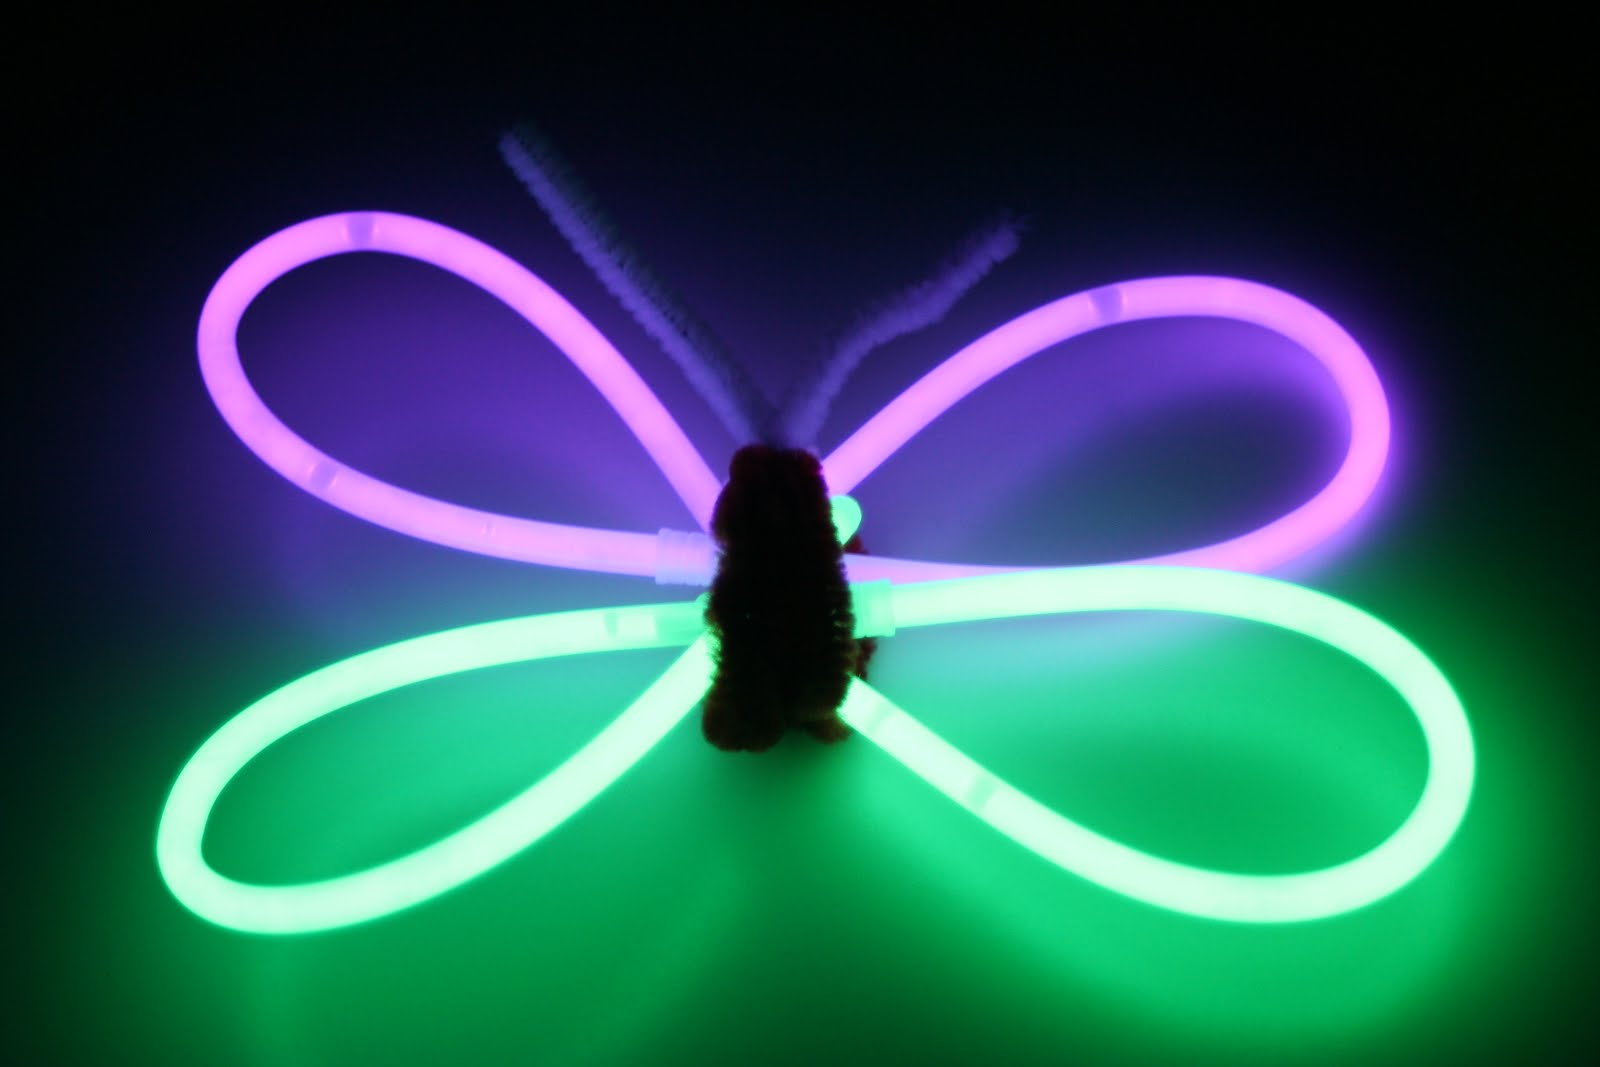 glow stick Glow sticks aren't just for wearing as bracelets you can also make some pretty incredible crafts, put together some amazing activities or use them to create awesome party decorations.